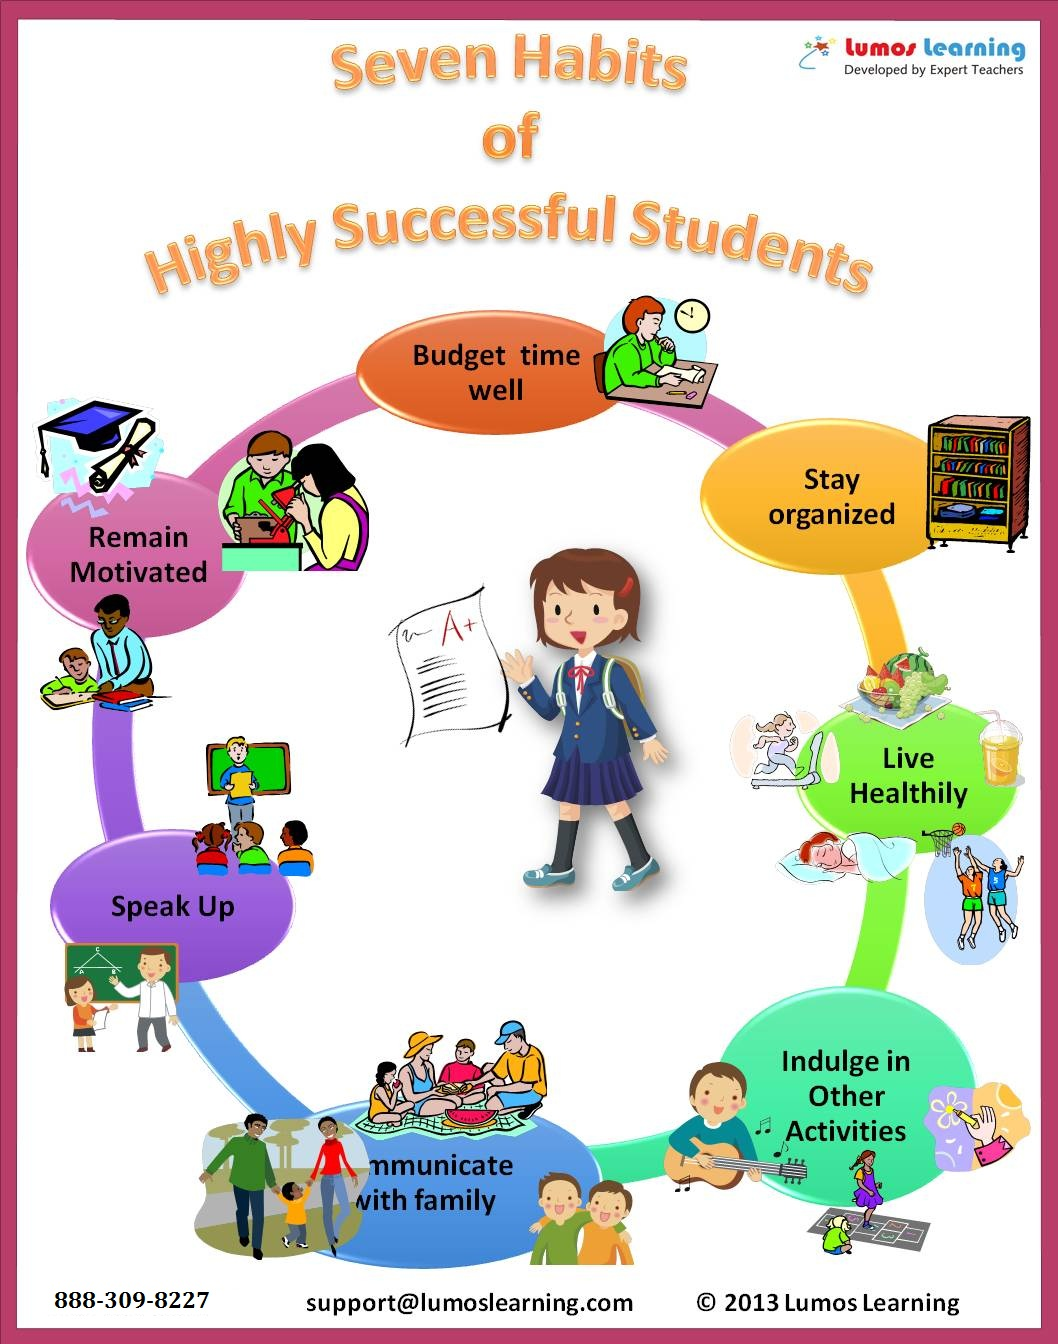 THE SEVEN HABITS OF SUCCESSFUL STUDENTS